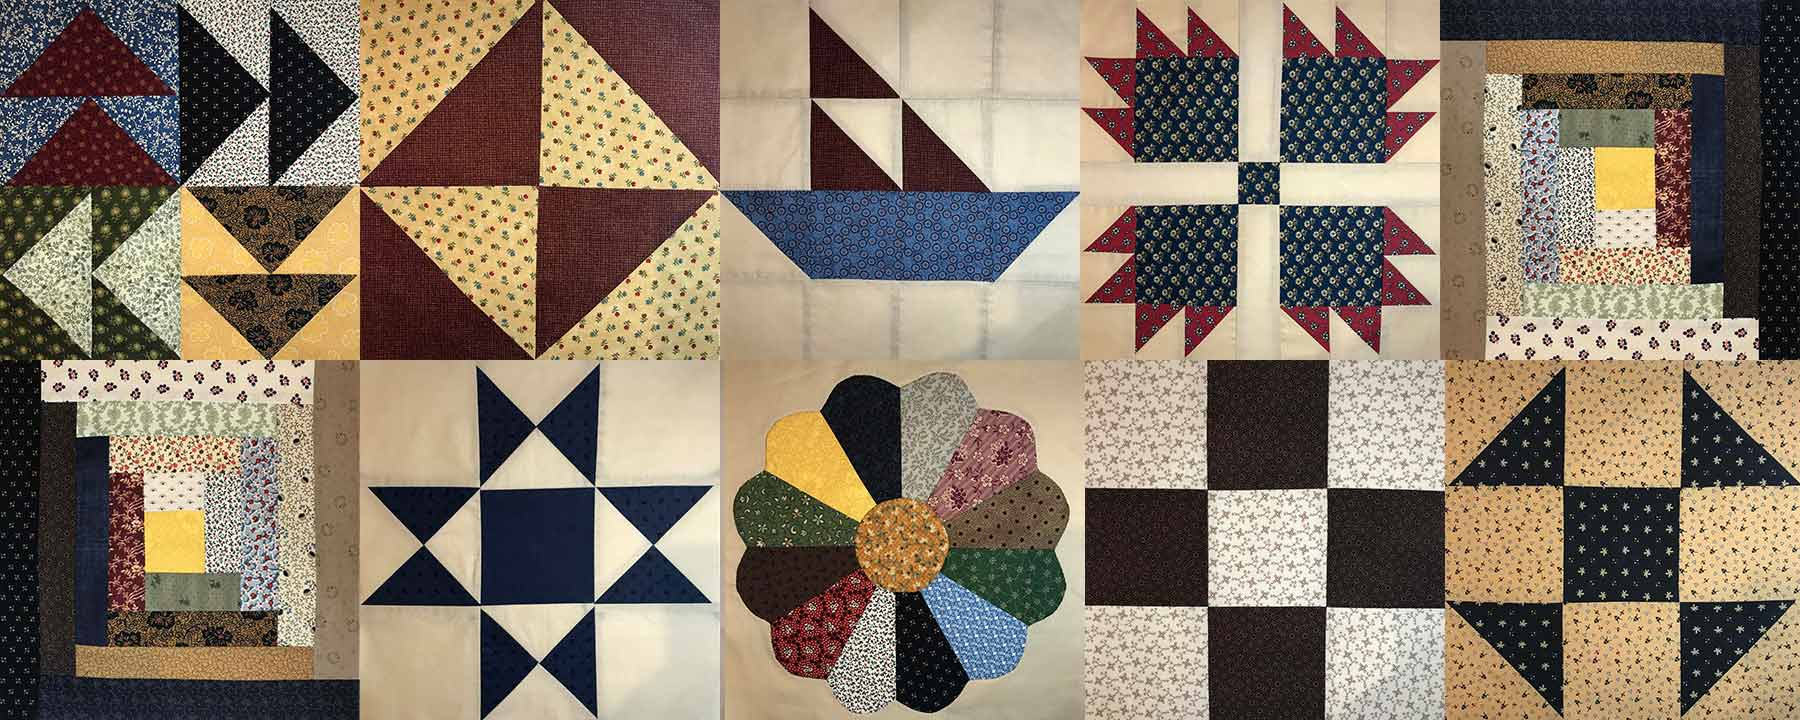 Grid of 10 Civil War color quilt block patterns.